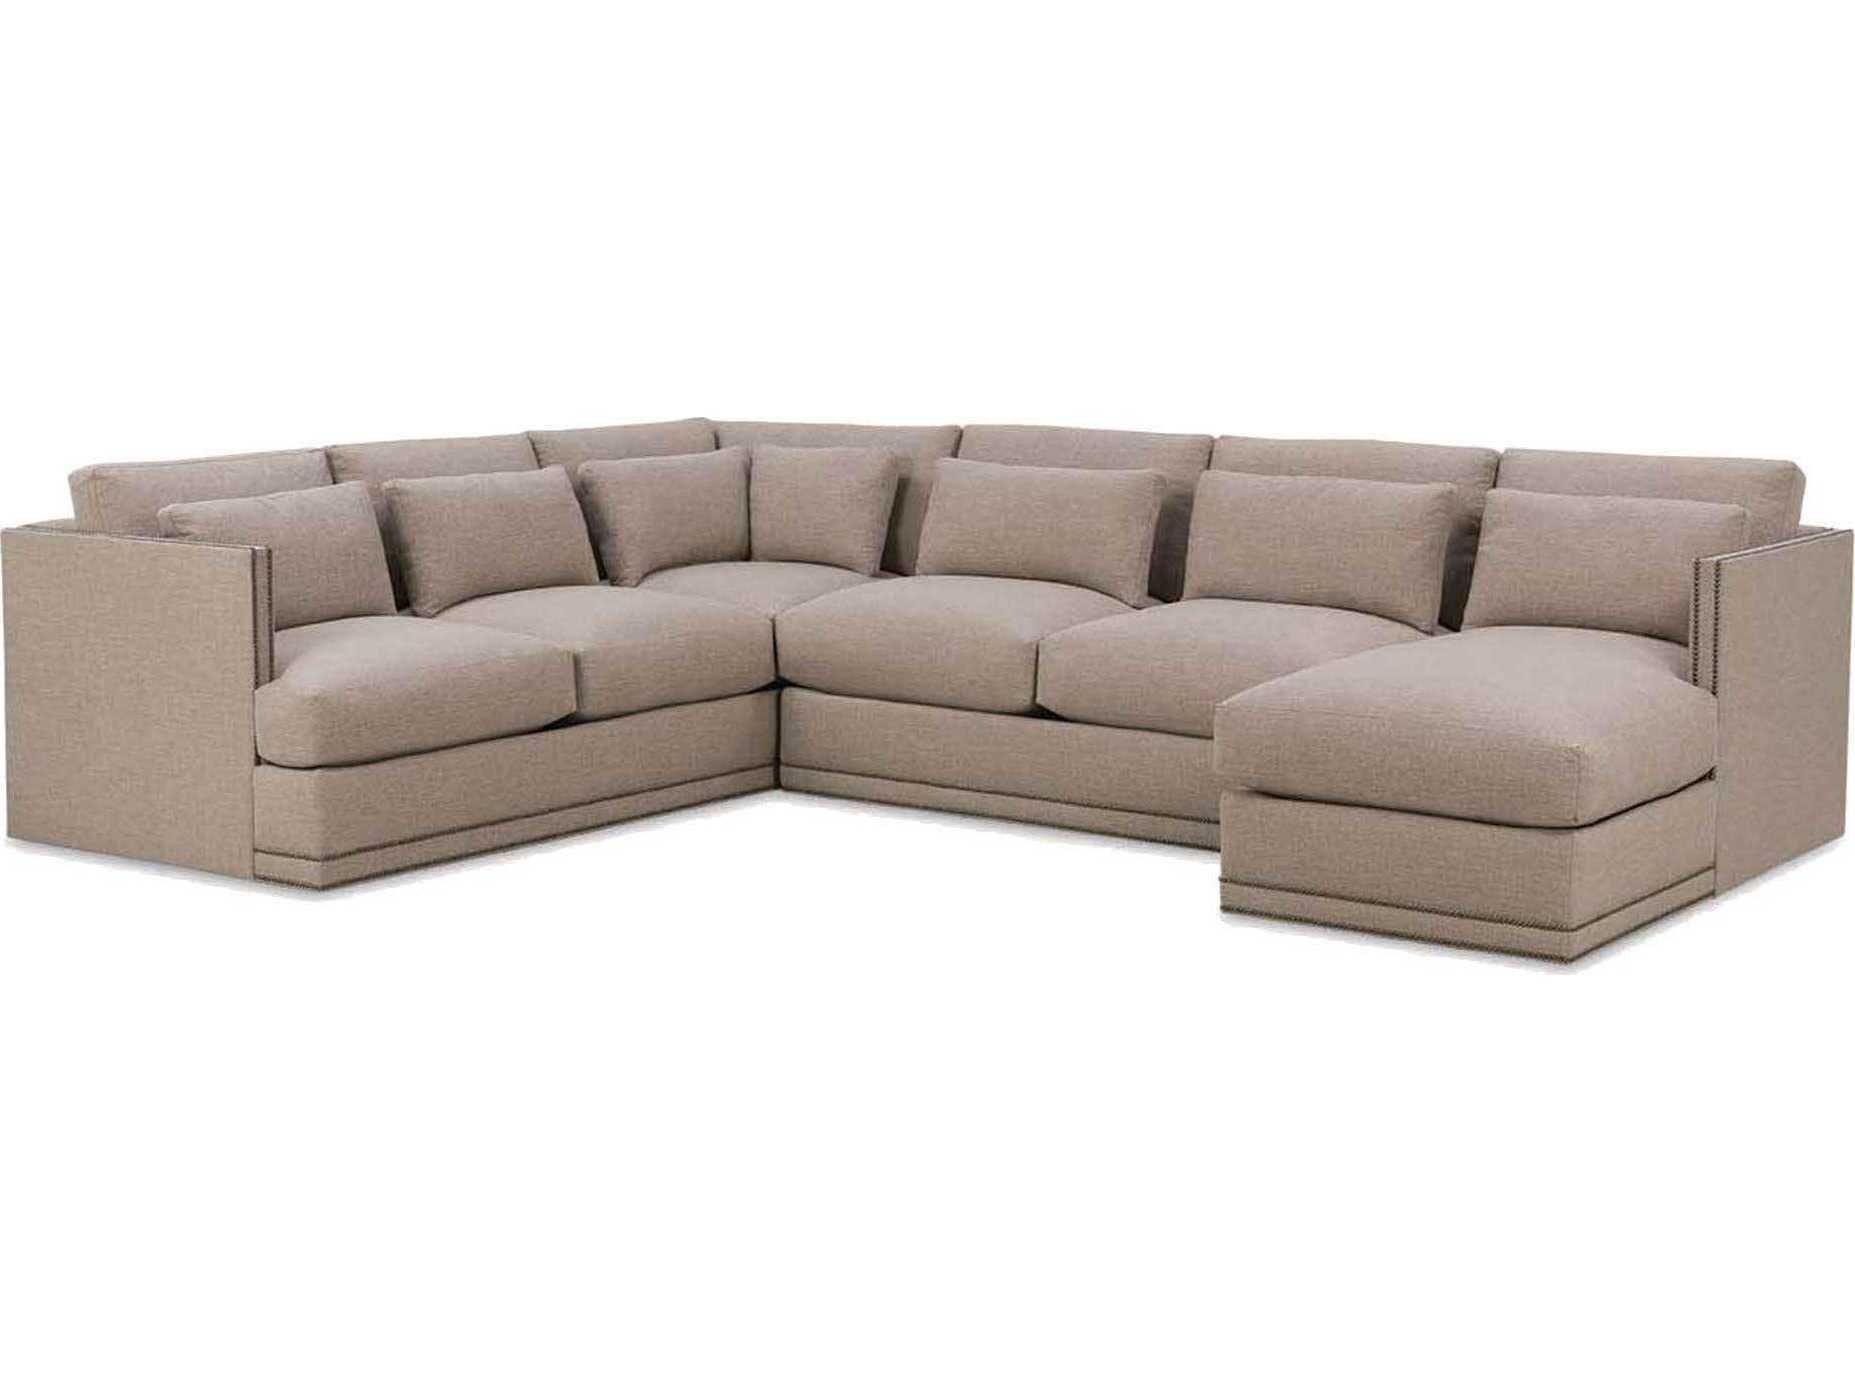 Patio Furniture Covers For Sectional Sofas Comfortable Sofa Bed Sg Rowe Oscar Pinterest Fabric